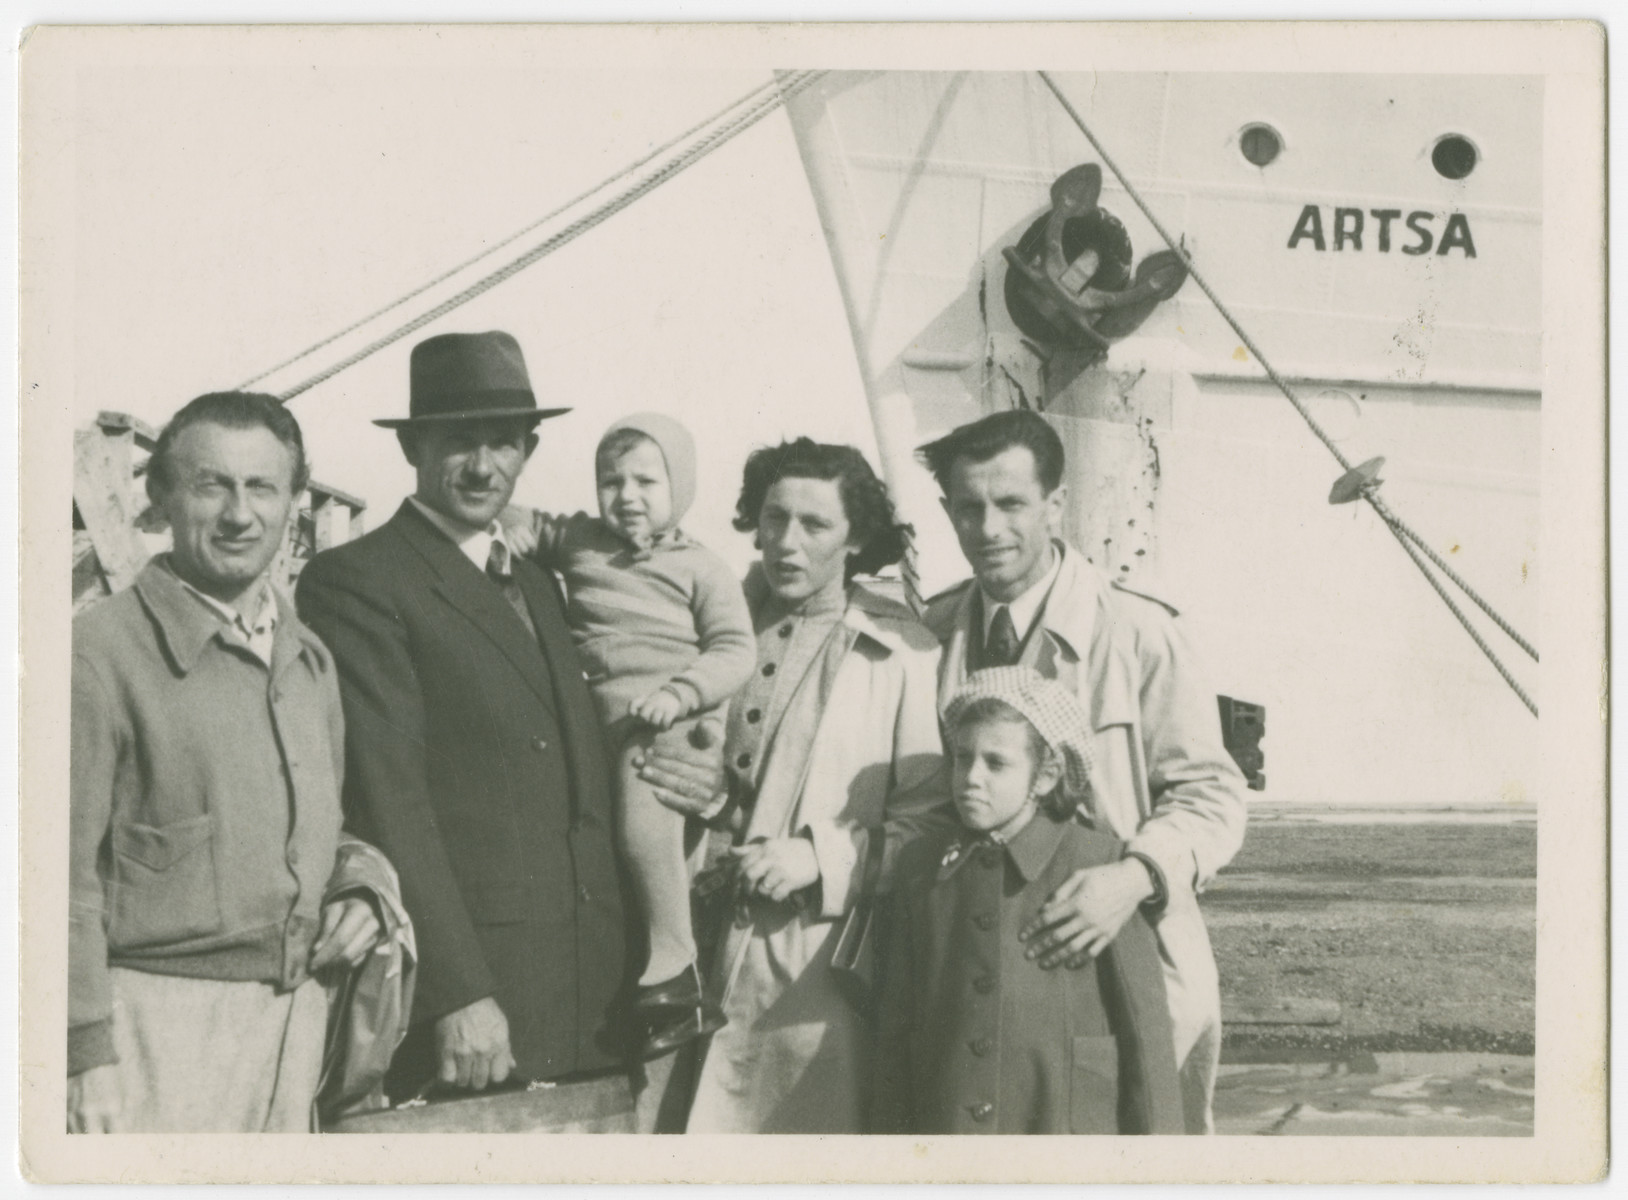 The family of Yehuda Bielski prepares to sail from Israel to the United States.  From left to right are Marcus Hudes (unlce of Lola), Yehuda holding his son Yigal, Lola, and Eli Hudes (Lola's brother).  Nili Bielski is in front of him.